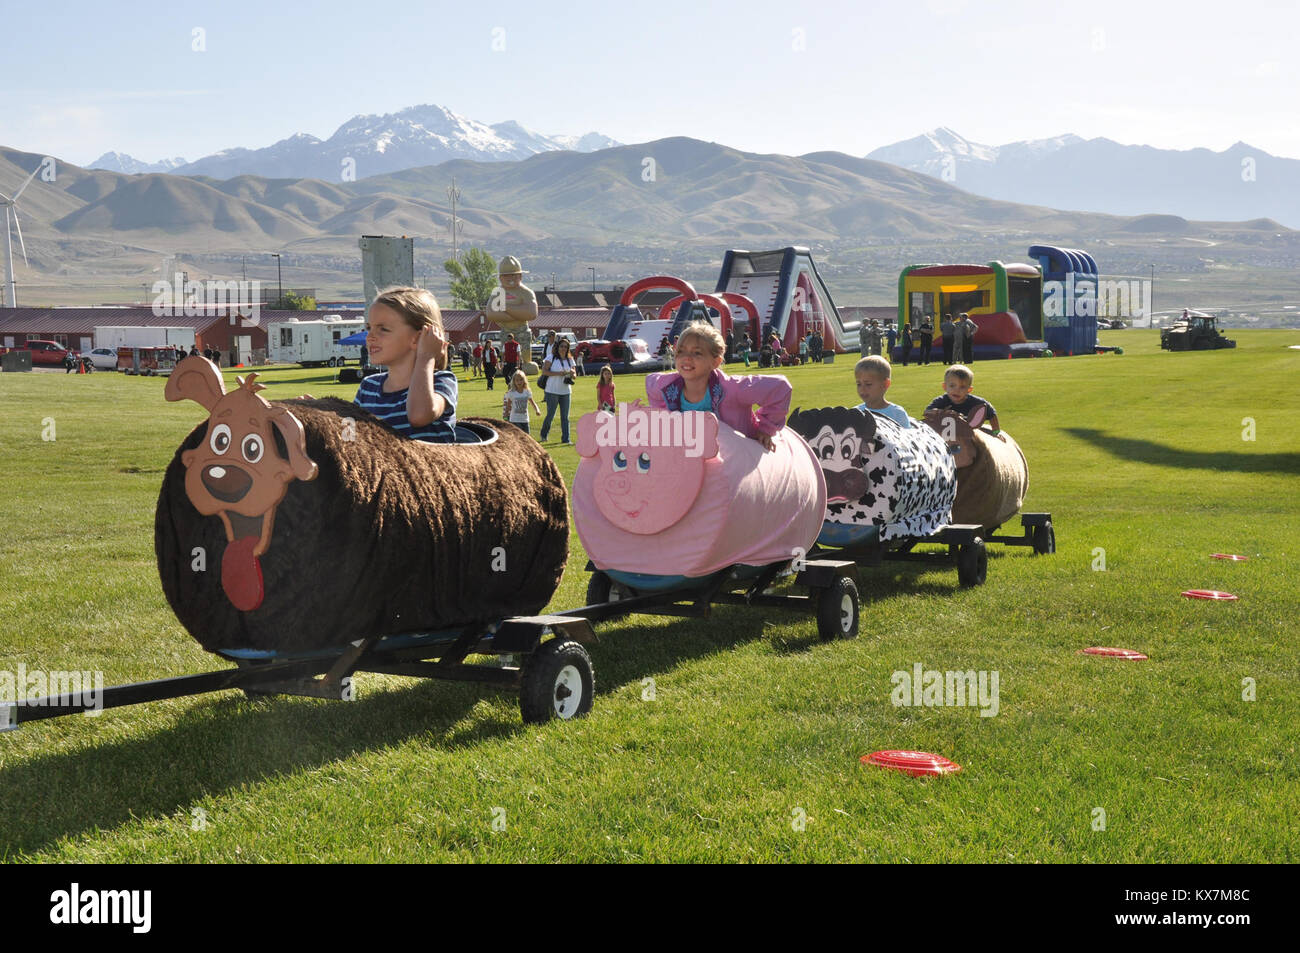 Utah National Guard celebrates Camp Williams 100 year anniversary with Iron Will races and open house May 17, 2014. - Stock Image